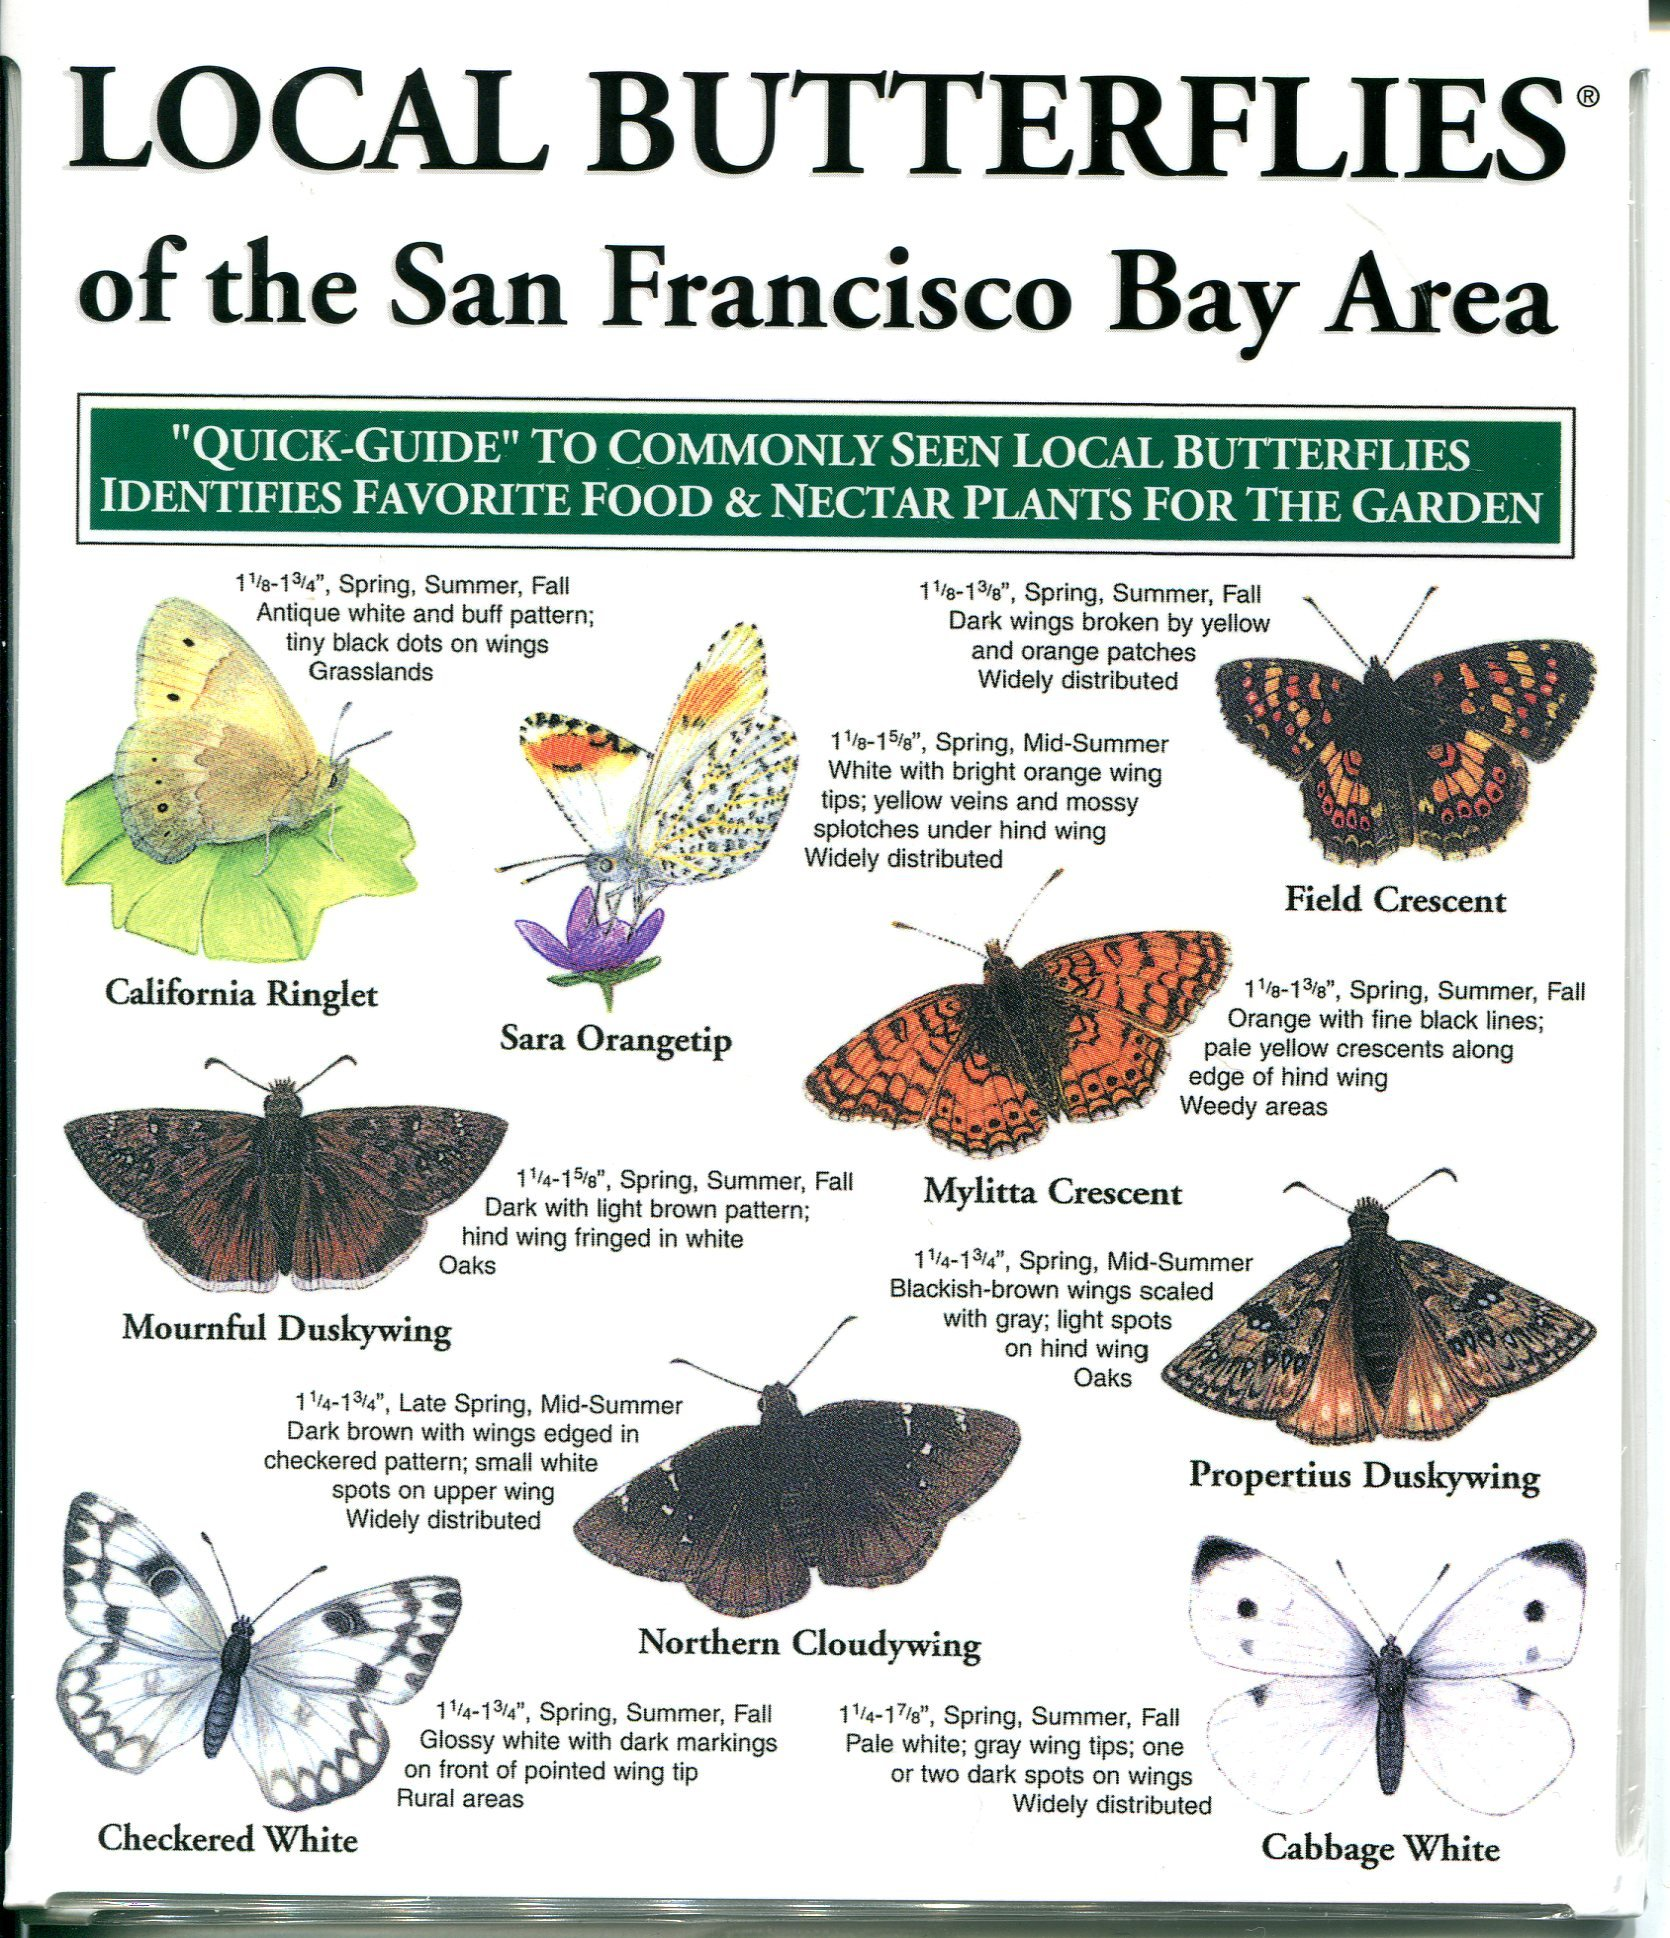 Charmant Local Butterflies Of The San Francisco Bay Area: Inc. Local Birds:  9781886403468: Amazon.com: Books